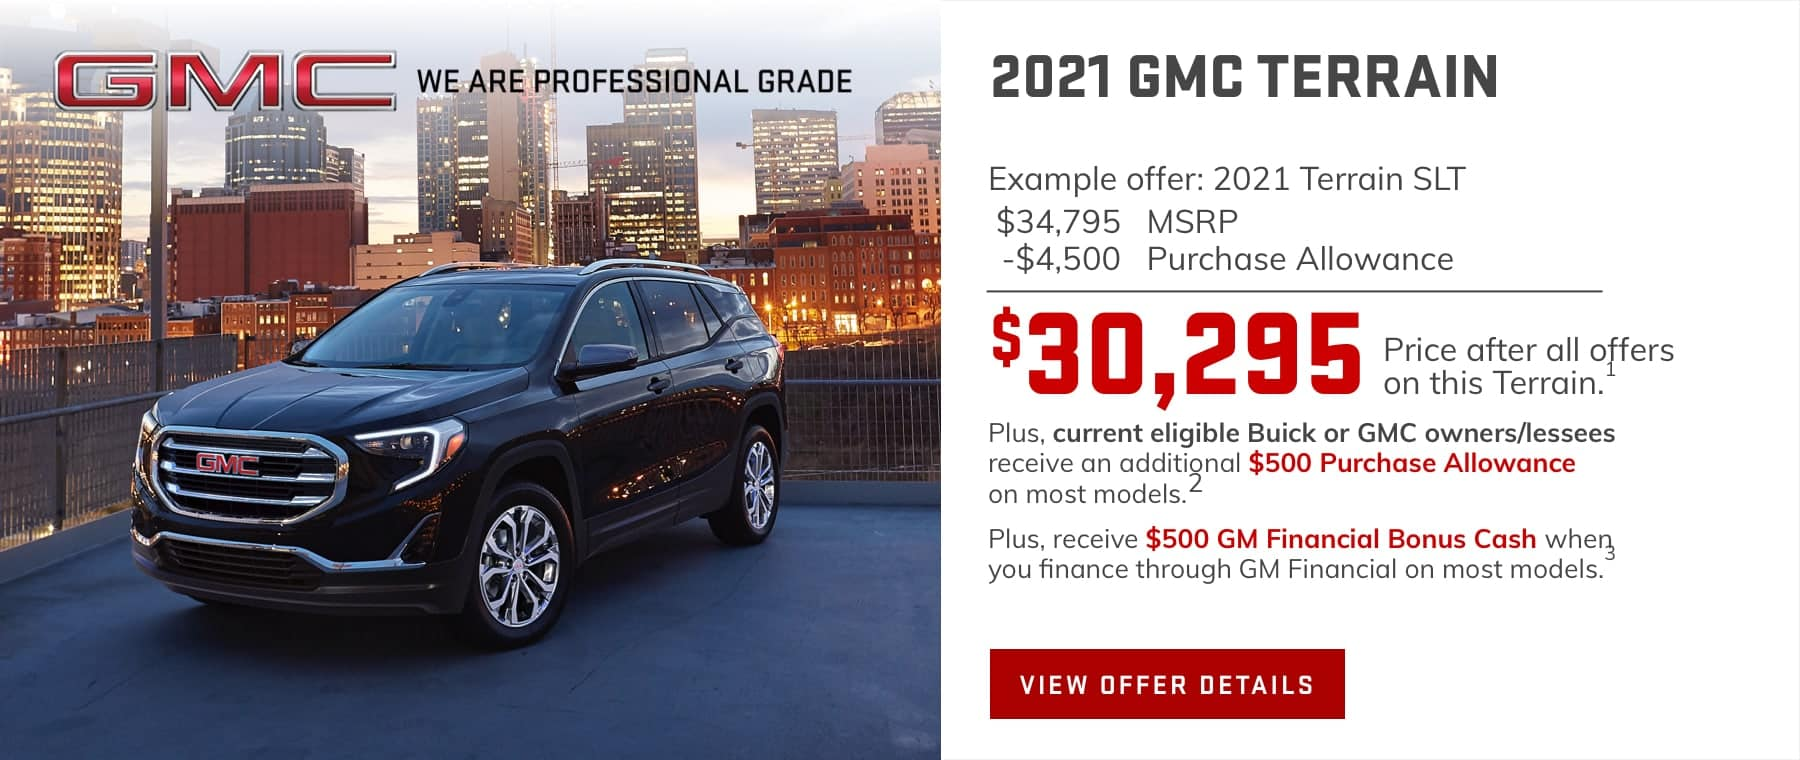 $30,295 Price after all offers on this Terrain.1 Plus, current eligible Buick or GMC owners/lessees receive an additional $500 Purchase Allowance on most models.2 Plus, receive $500 GM Financial Bonus Cash when you finance through GM Financial on most models.3